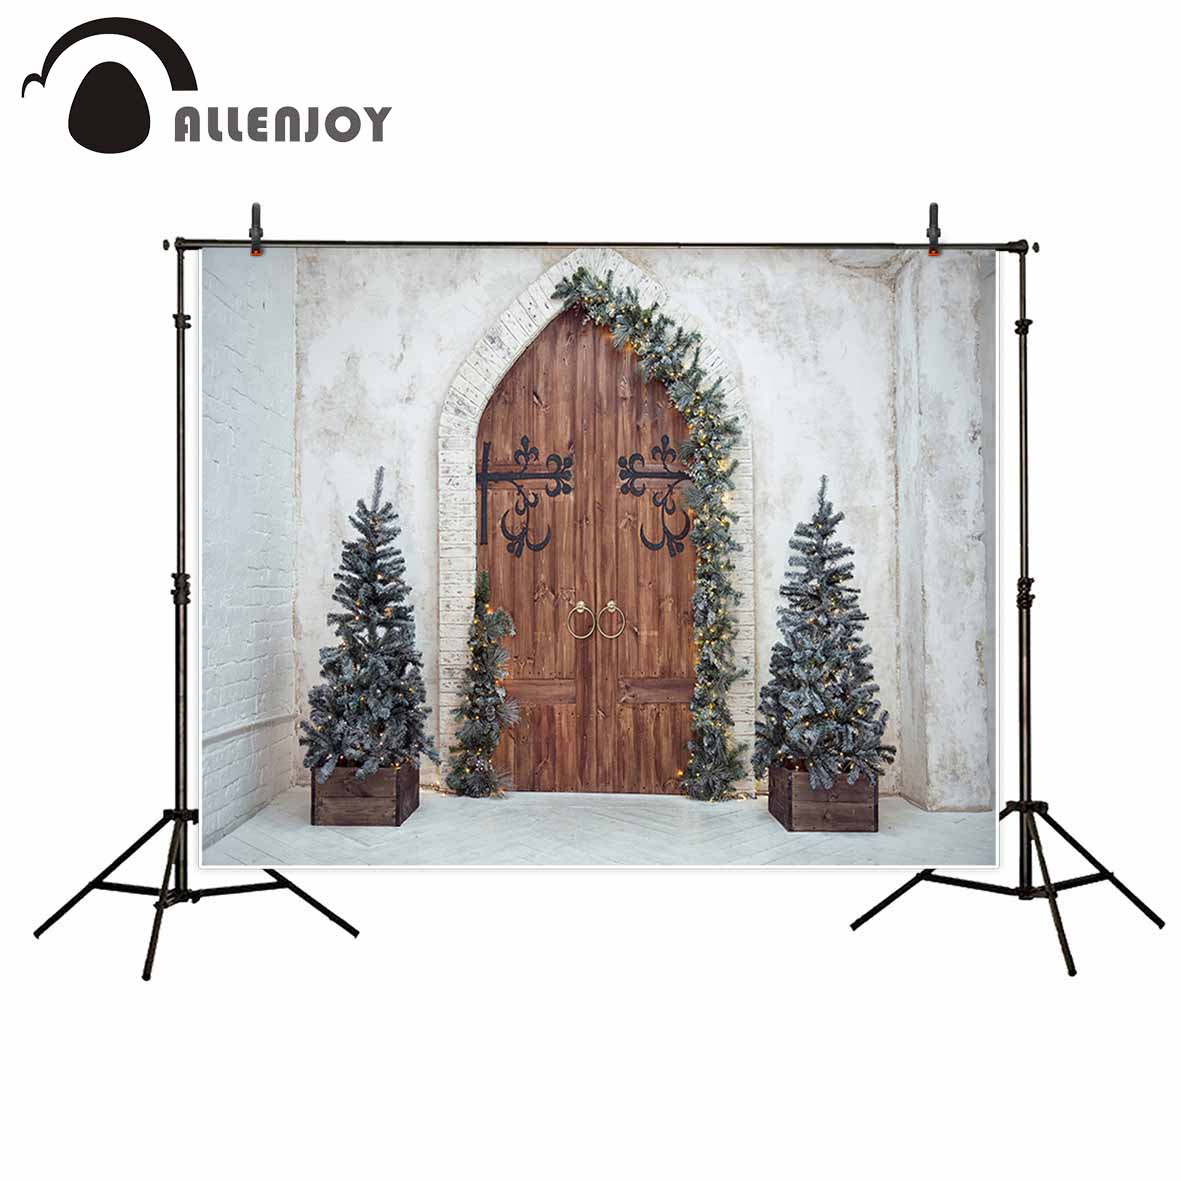 Allenjoy Christmas background Retro vintage Wooden door decoration tree backgrounds for photo studio christmas backdrop